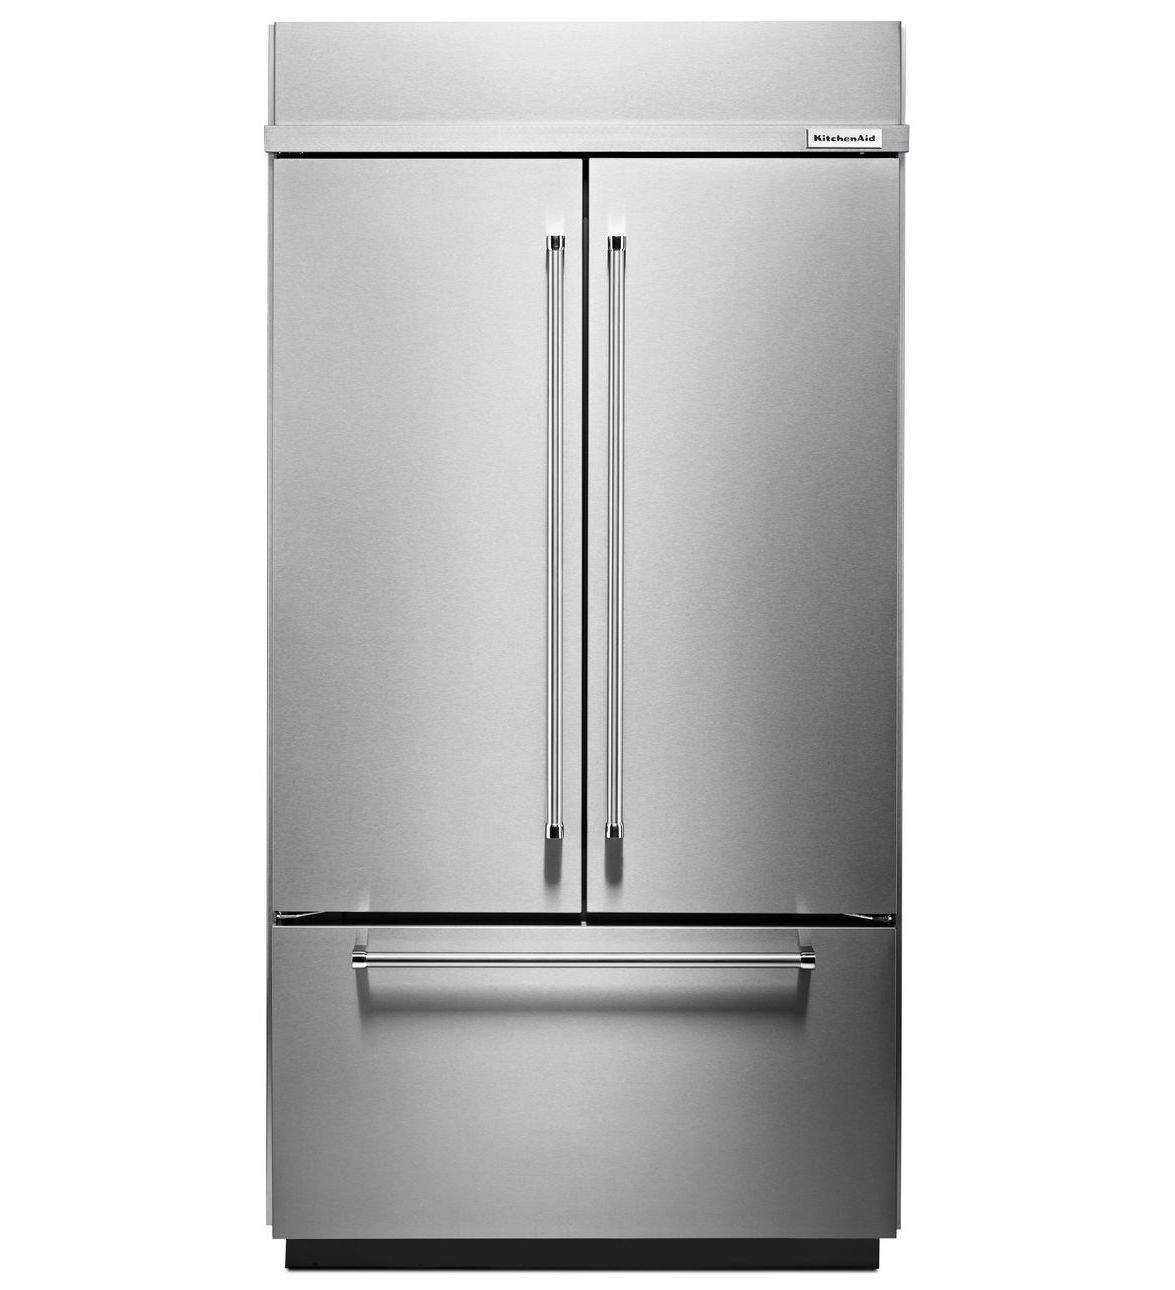 42 French Door Refrigerator At Us Appliance